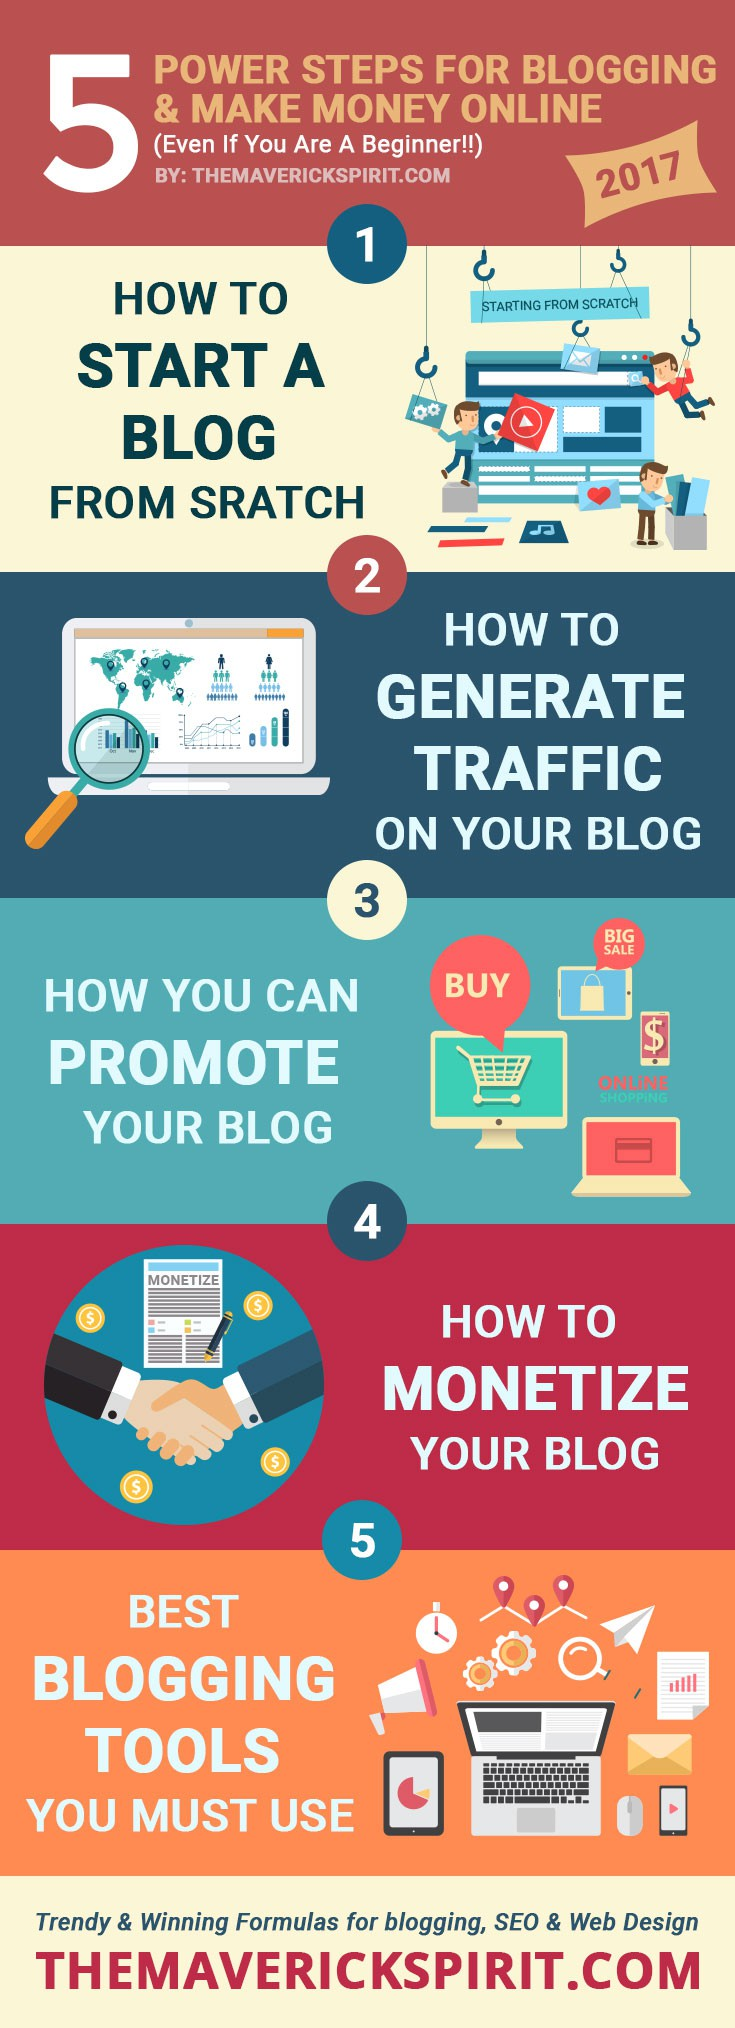 how-to-start-a-blog-and-make-money-online-5-blogging-steps-the-maverick-spirit